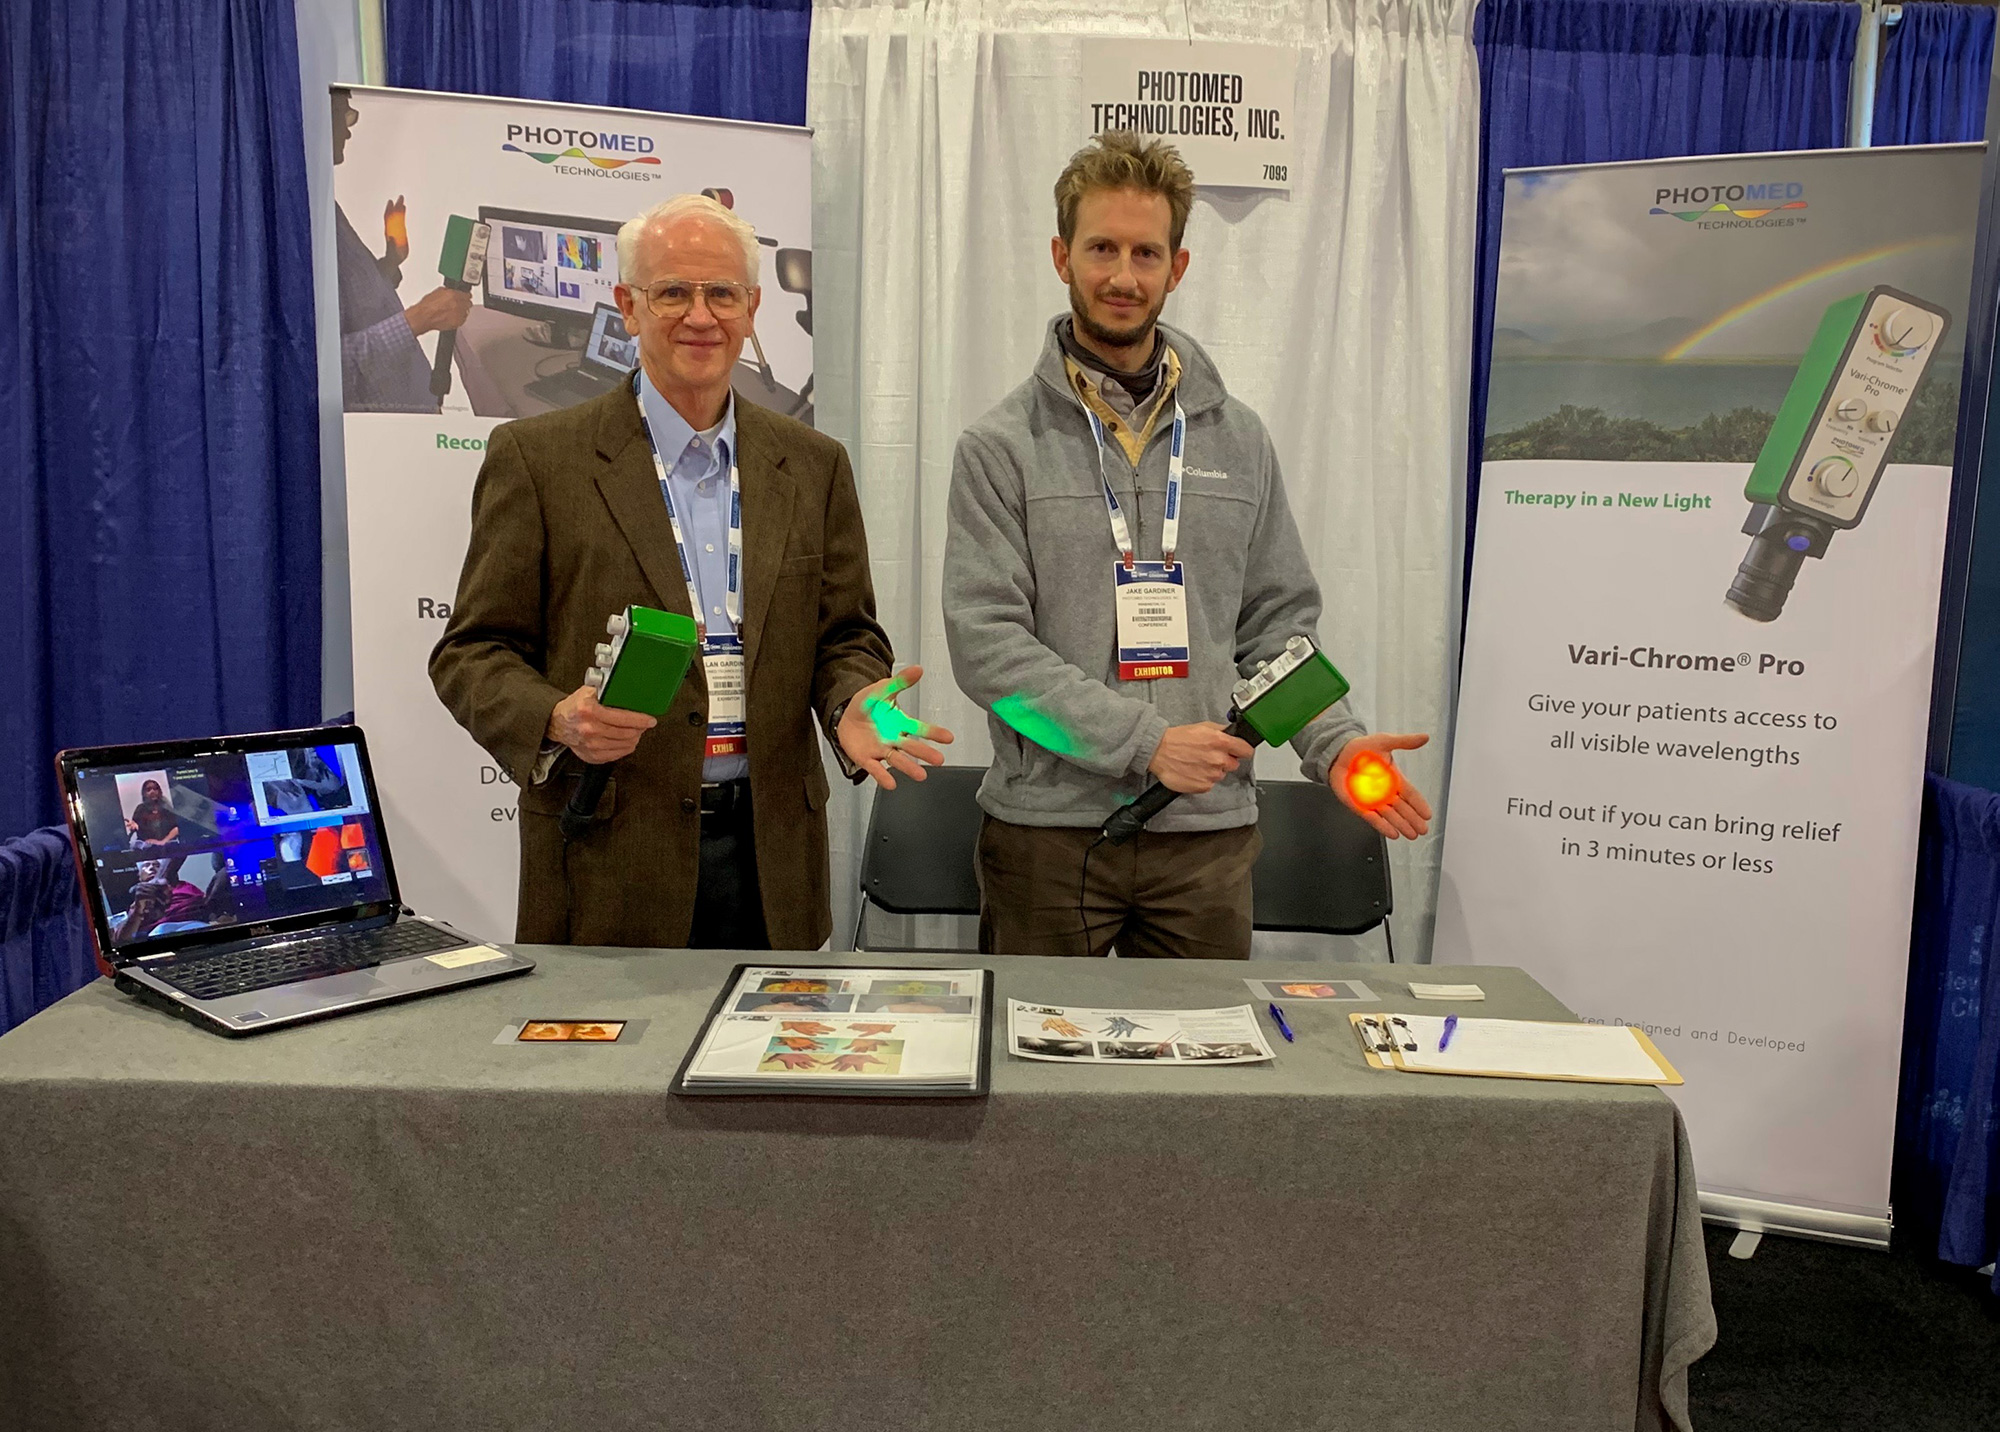 Allan and Jake Gardiner at PhotoMed's booth at the A4M conference in Las Vegas. Visitors got a hands-on demonstration of the Vari-Chrome® Pro.